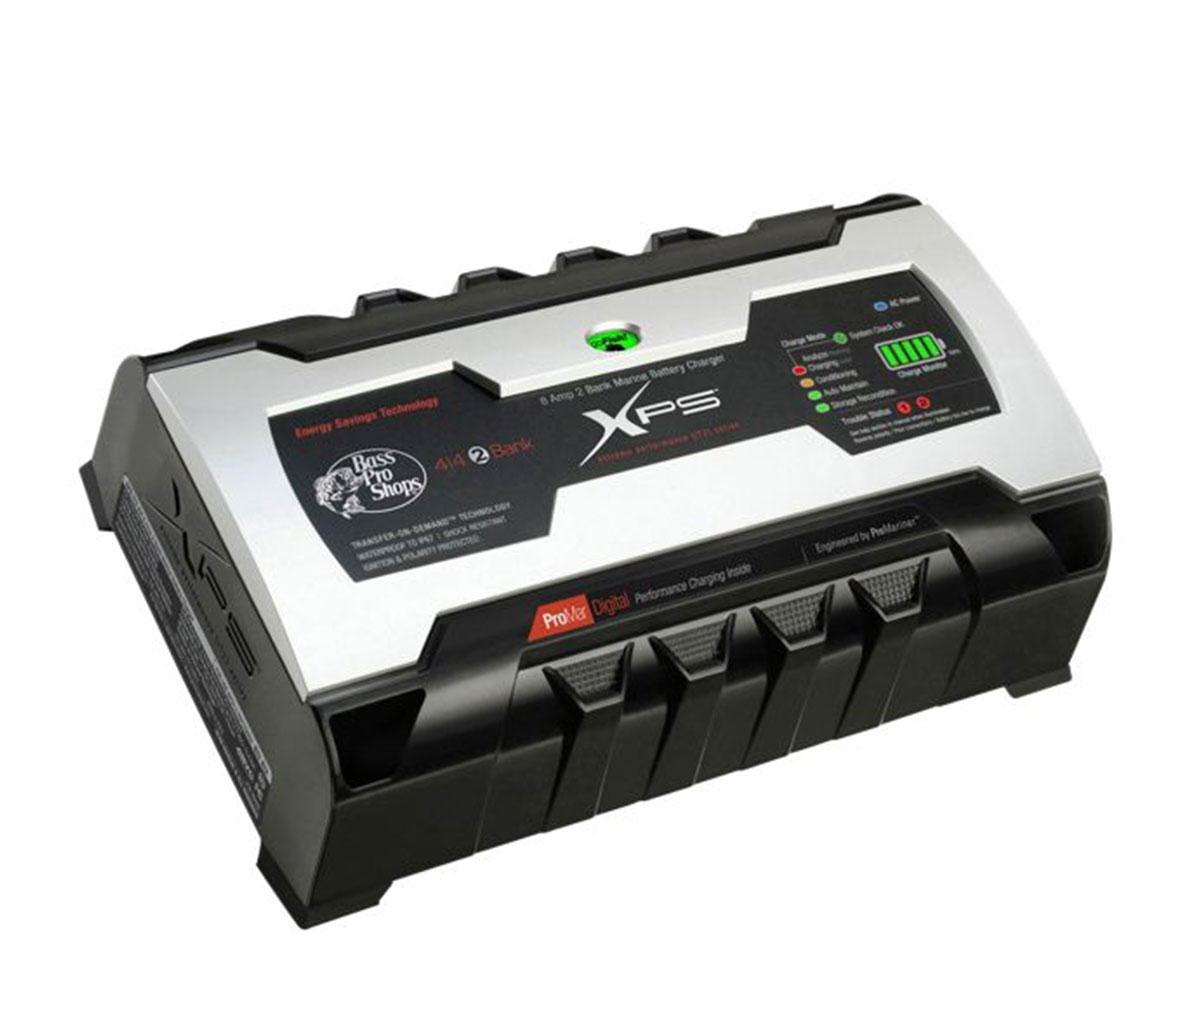 Bass Pro Shop Onboard Battery Charger